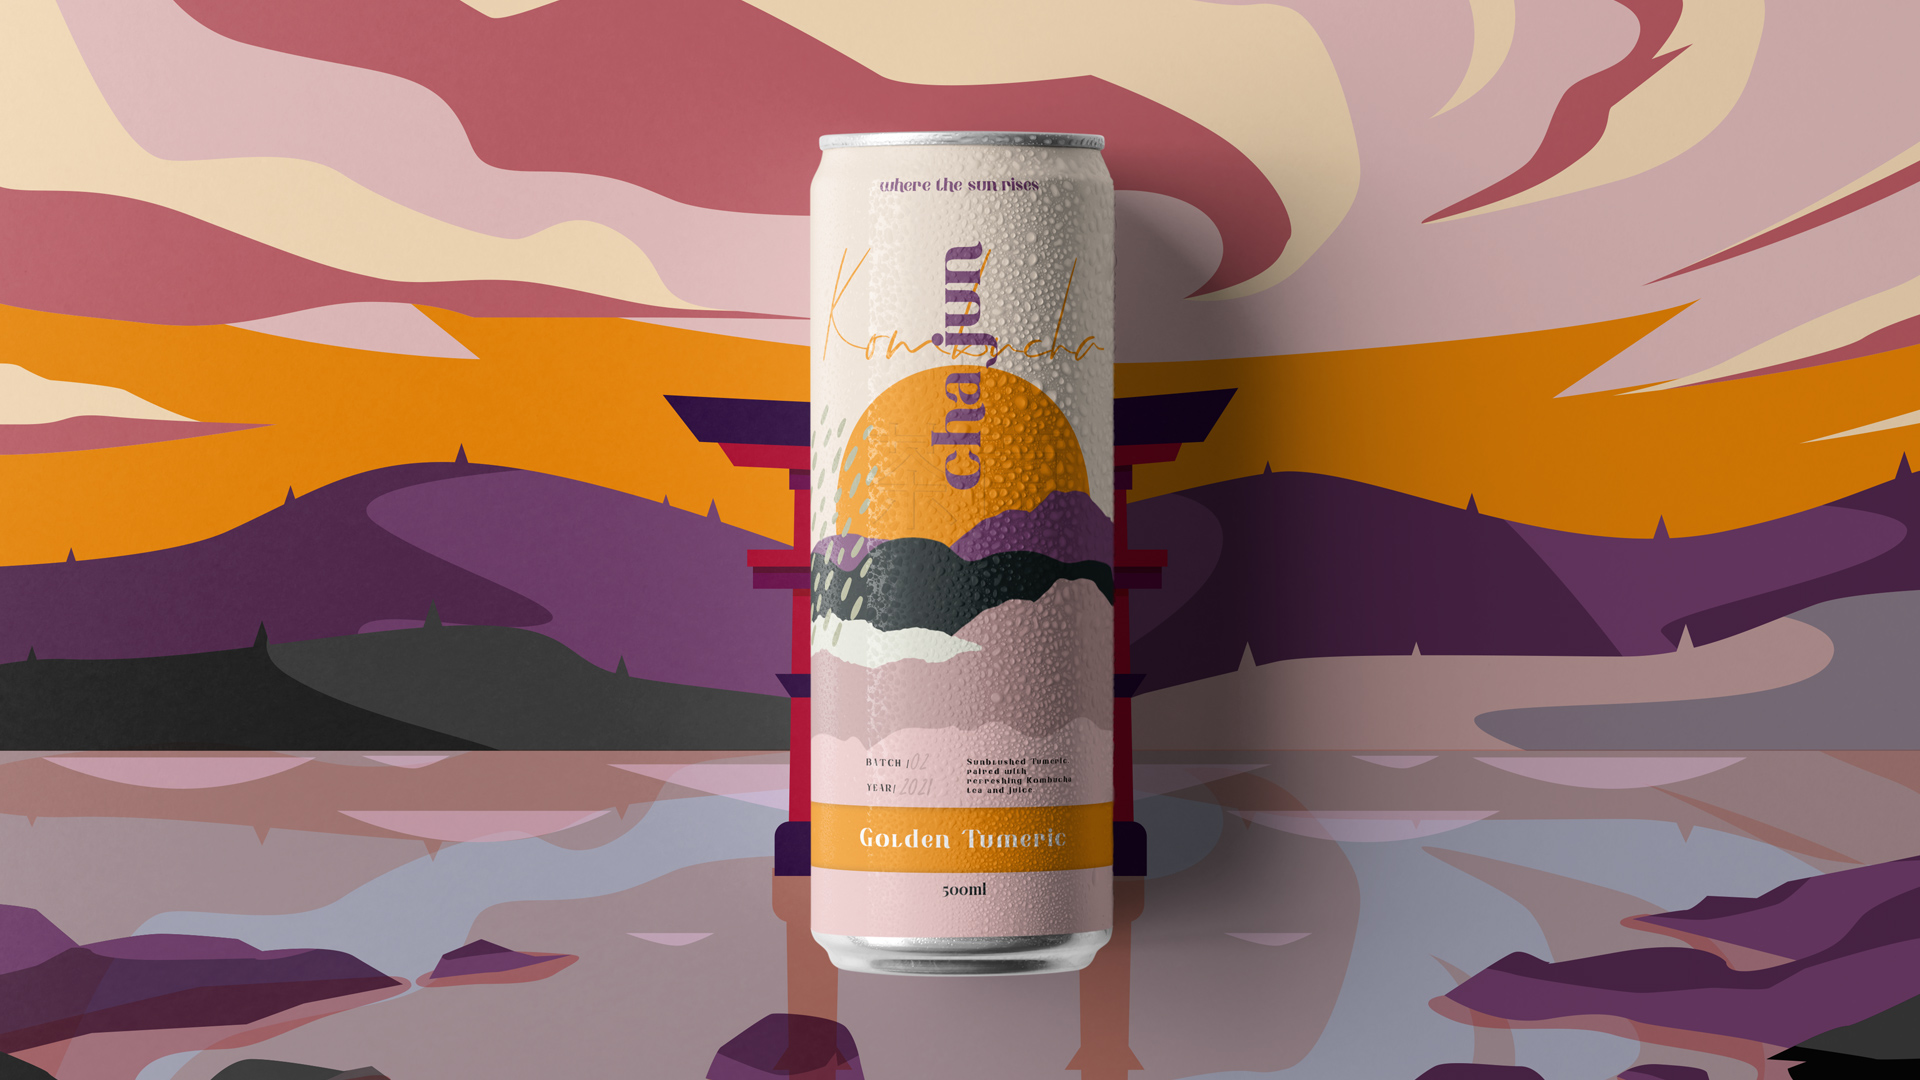 Vinille Create Identity, Packaging, and Print Collateral for the Asian Kombucha Brand